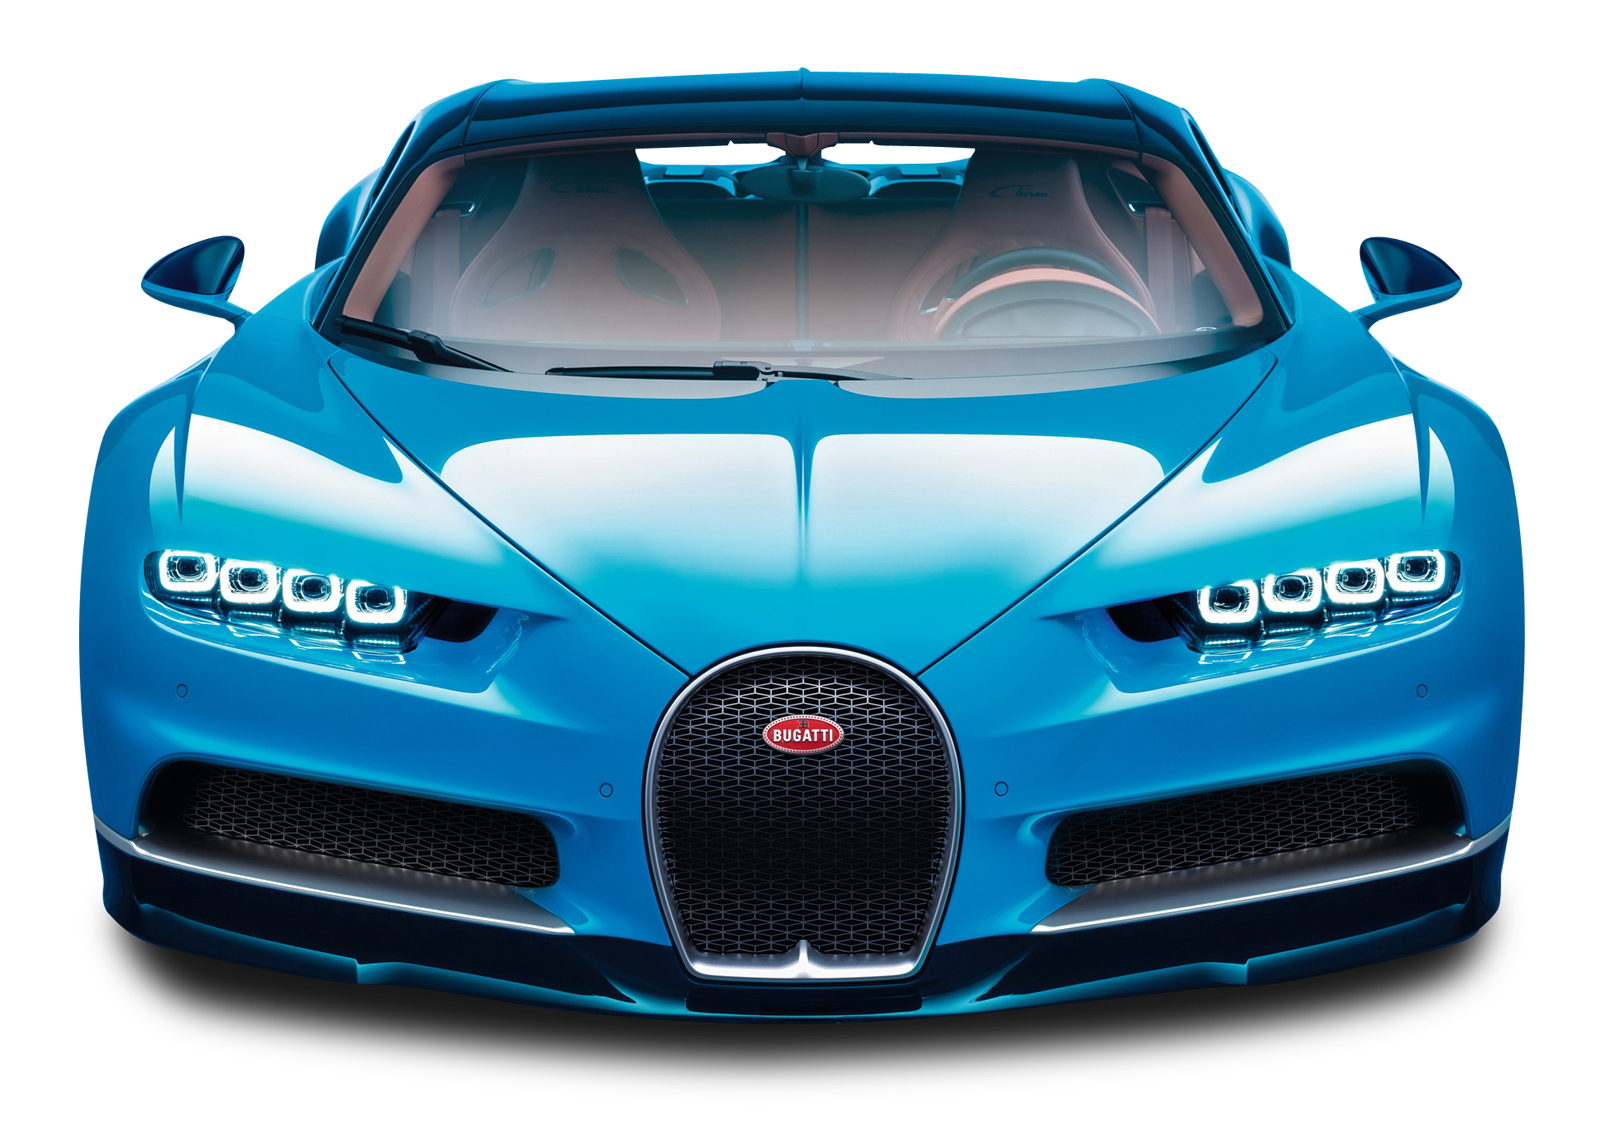 Car clipart background clip freeuse library Blue Bugatti Chiron Car PNG Image - PurePNG | Free transparent CC0 ... clip freeuse library